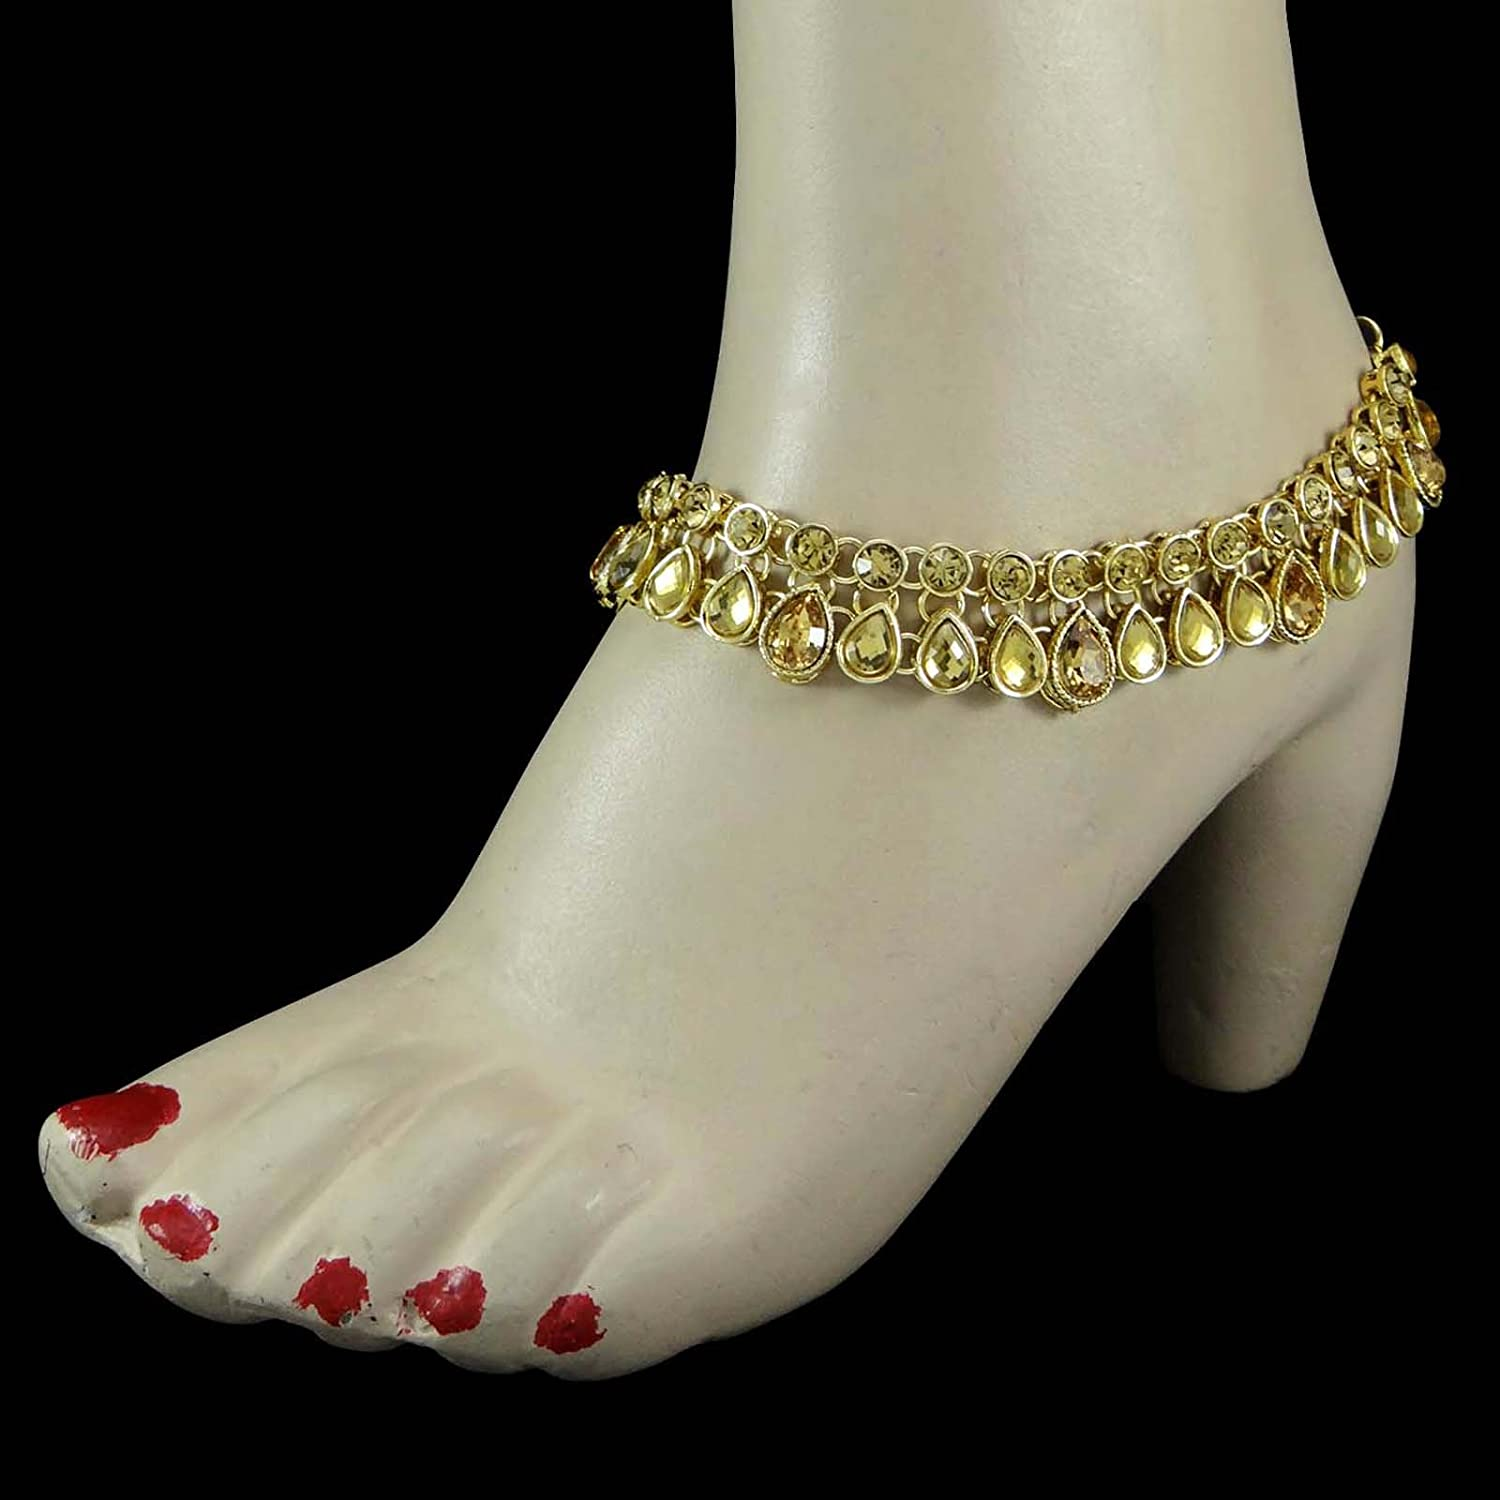 anklet sterling ankle rose jewelry everyday wedding silver bracelet pin quartz